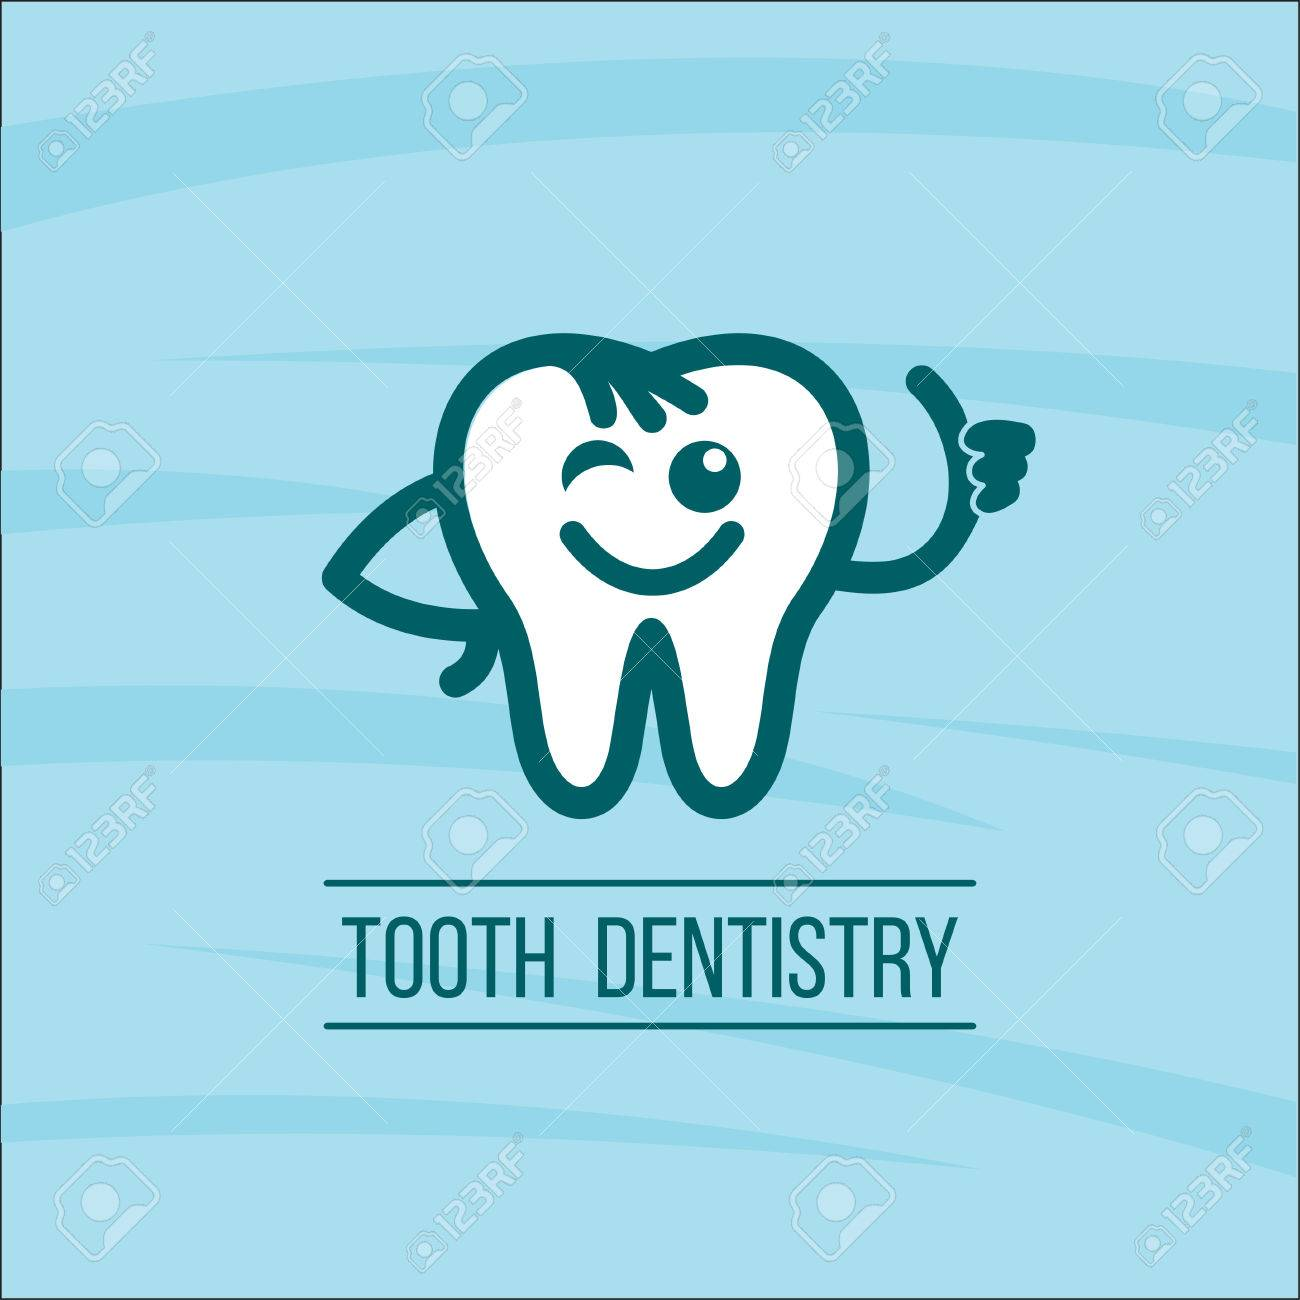 dentist tooth logo design template dental clinic logotype royalty